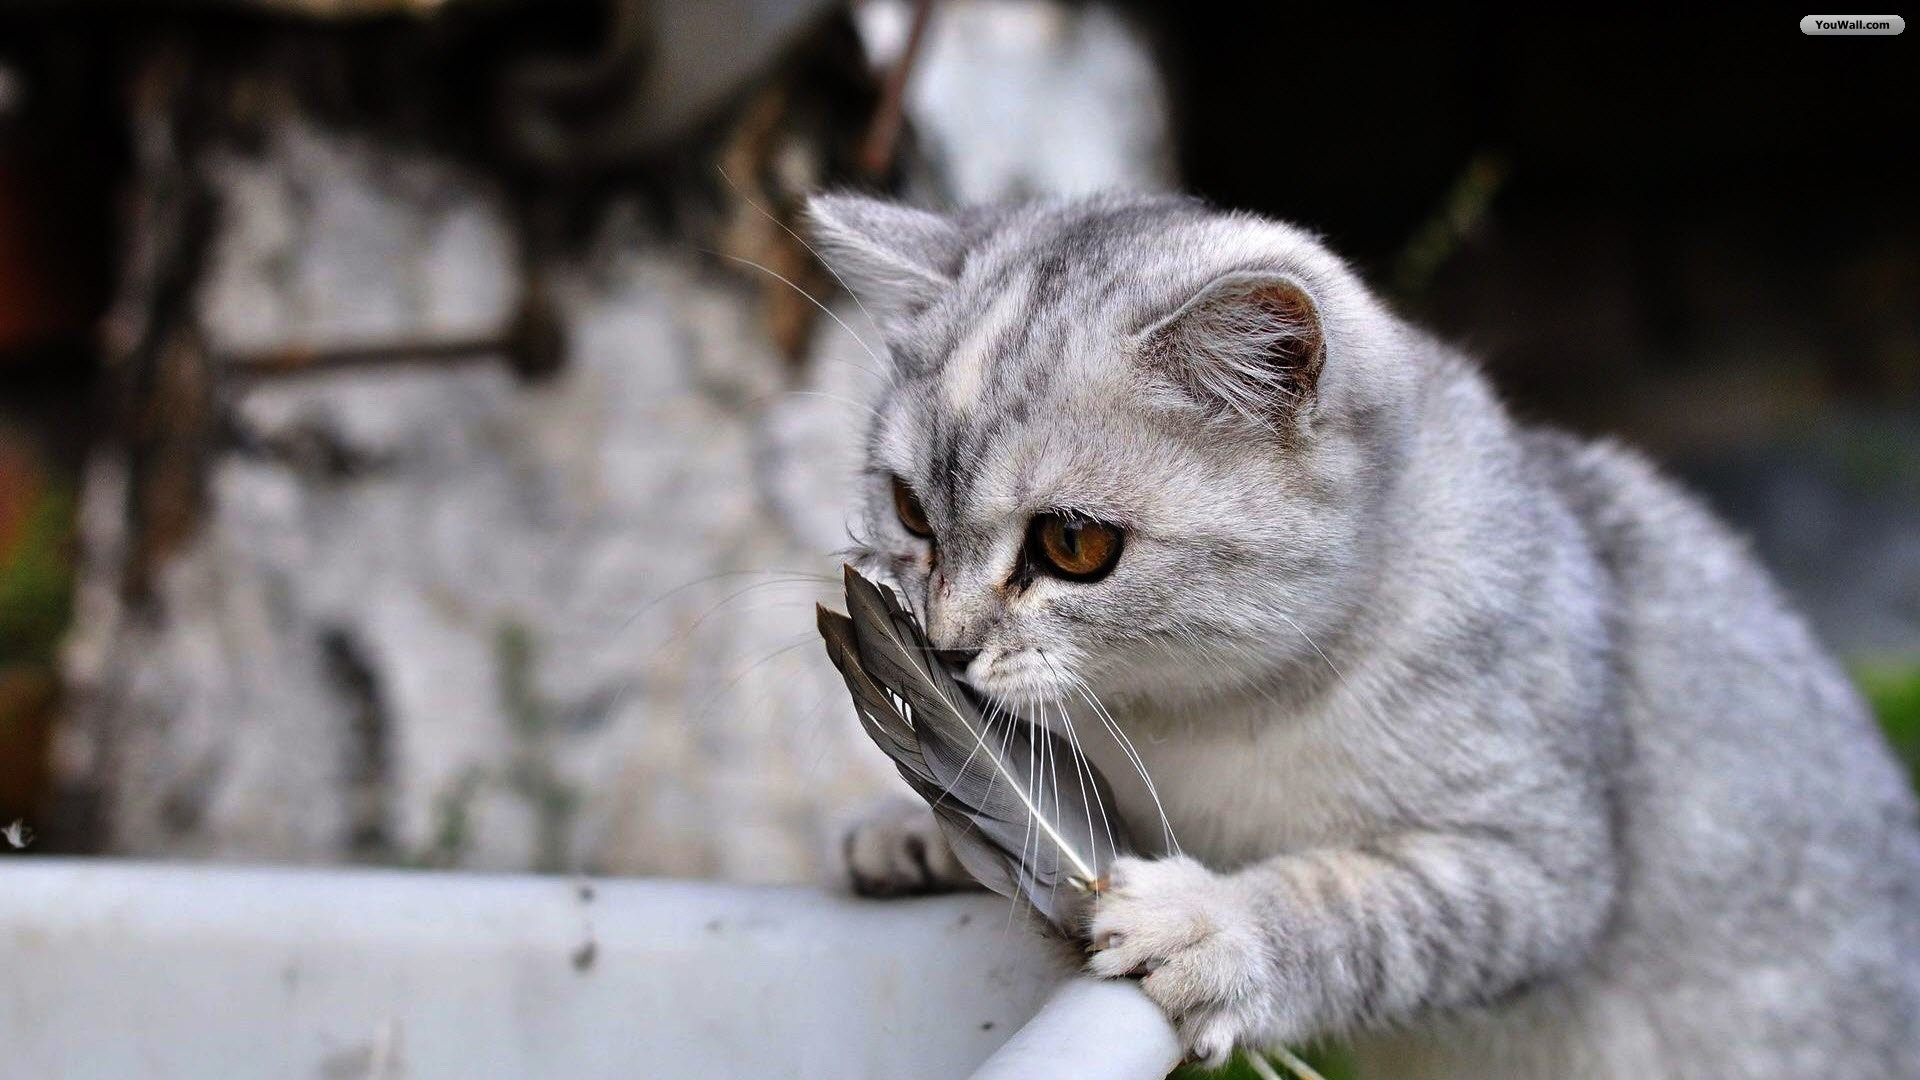 Reading cats computer wallpaper 47 images - Cute kittens hd wallpaper free download ...